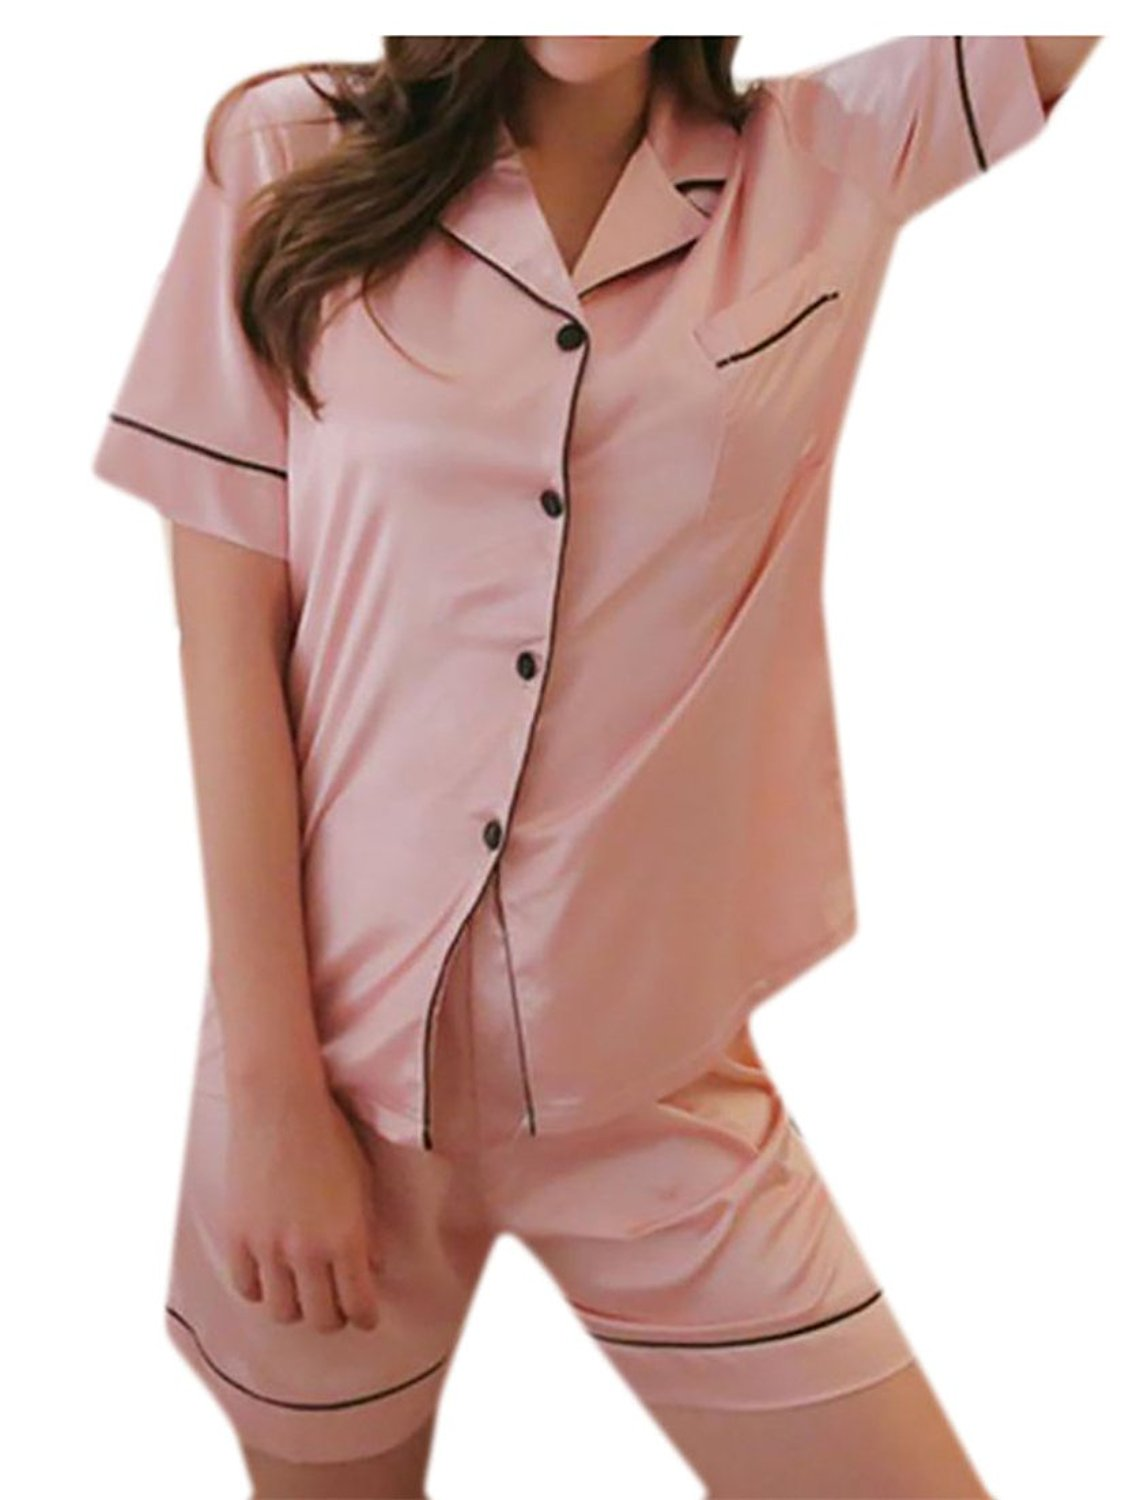 03a942dcf6 Get Quotations · Wofupowga Womens Pajama Set Solid Silk Satin Long Sleeve  Lapel Nightwear Pink1 S